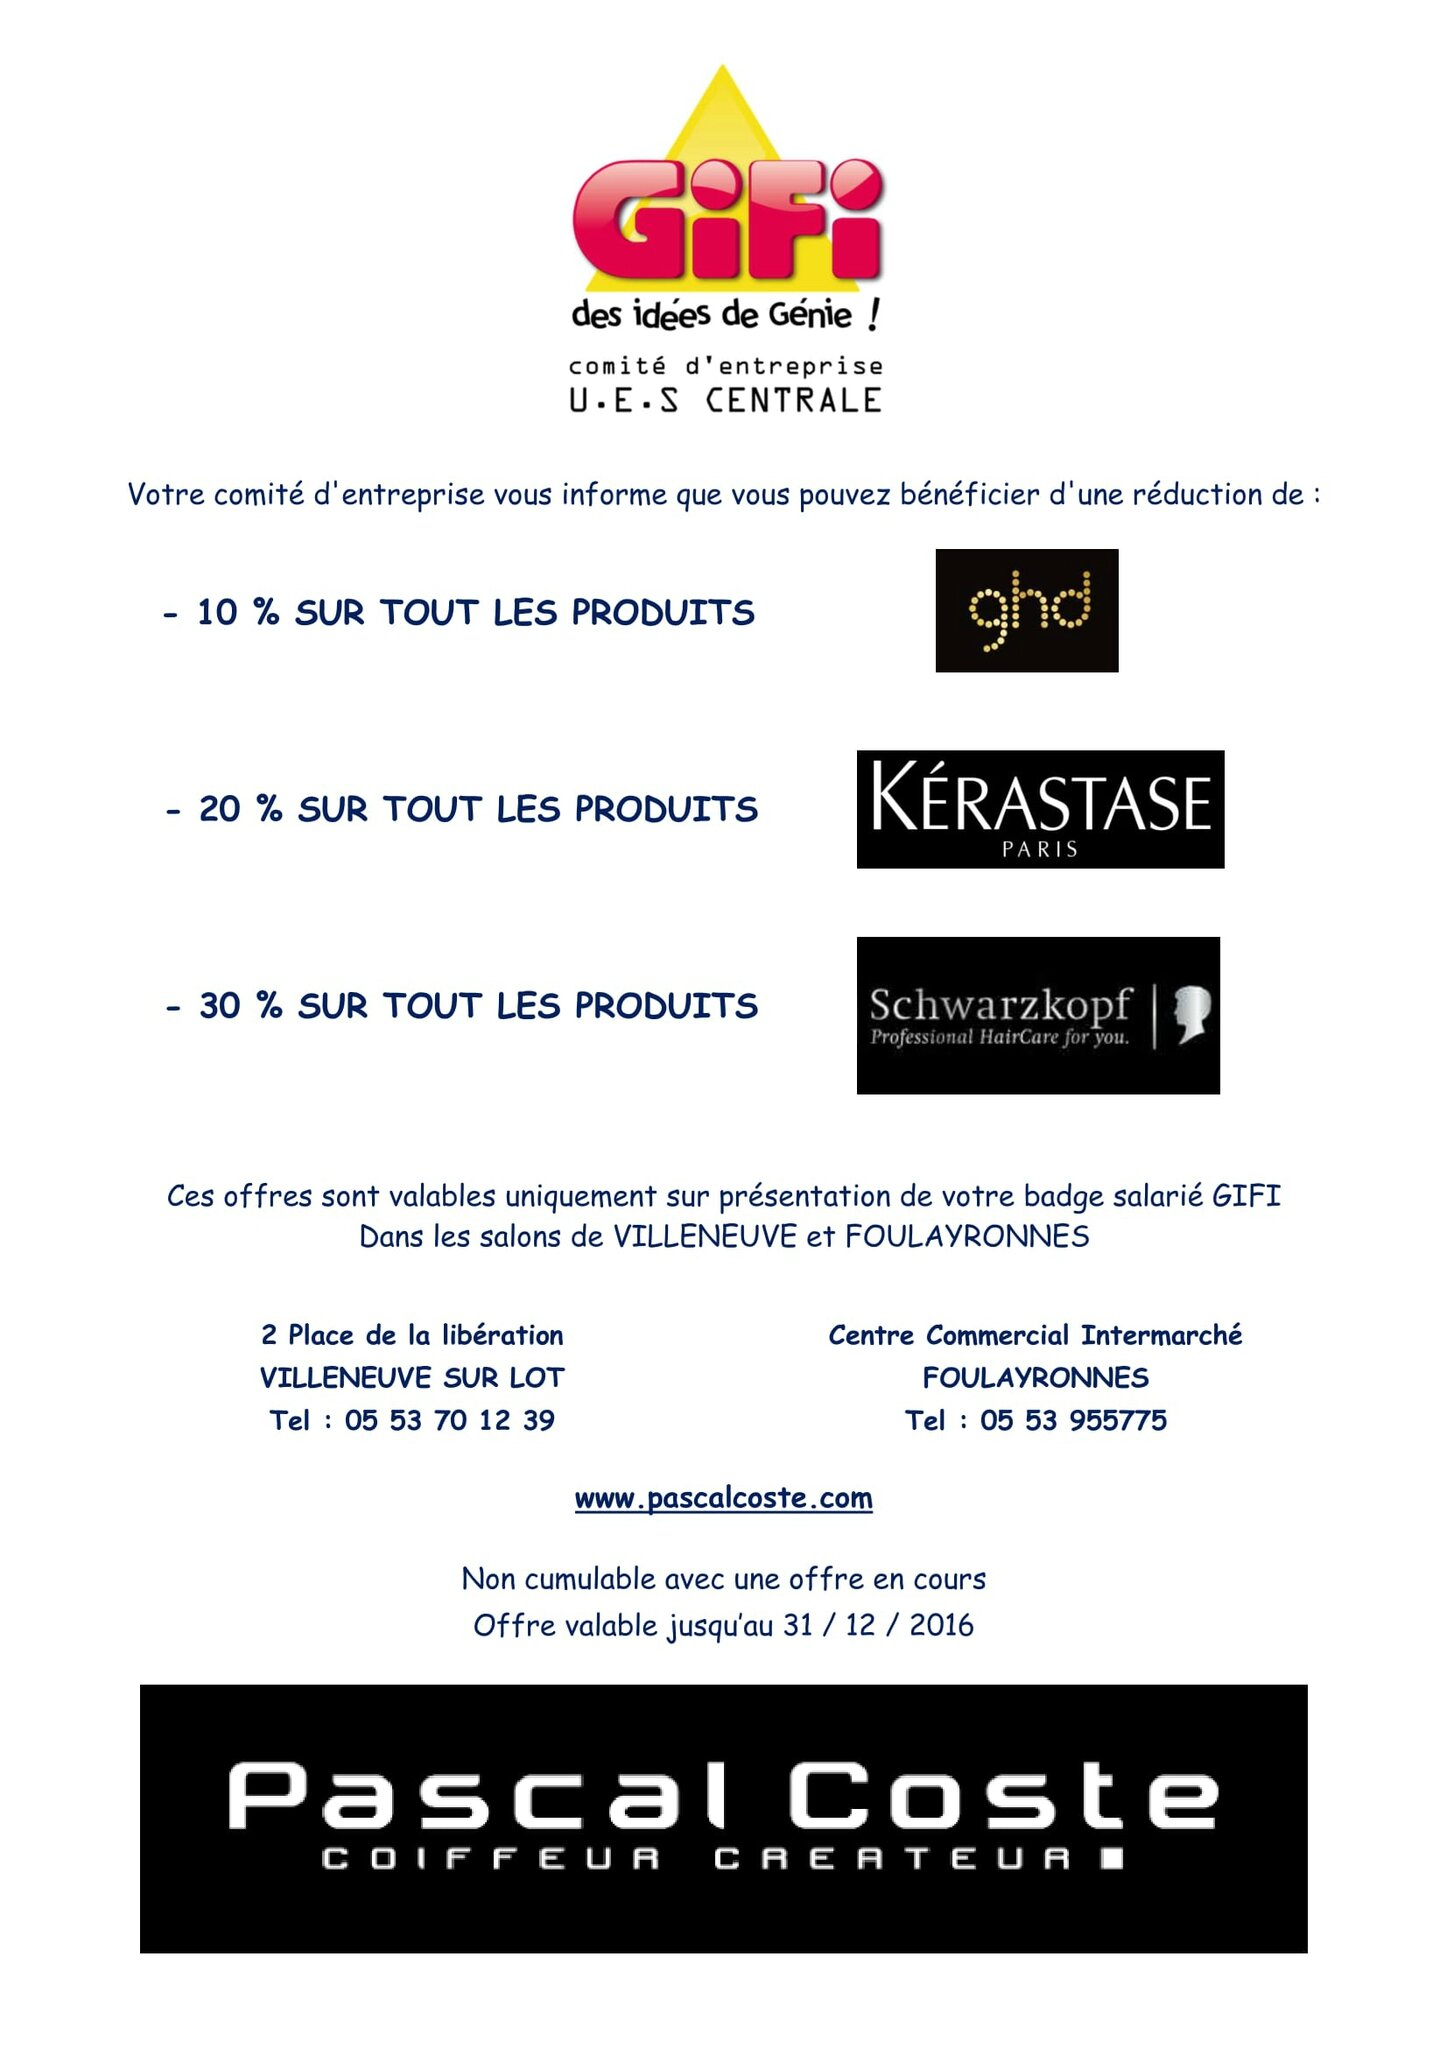 Salon de coiffure pascal coste 2016 syndicat cftc gifi for Salon pascal coste